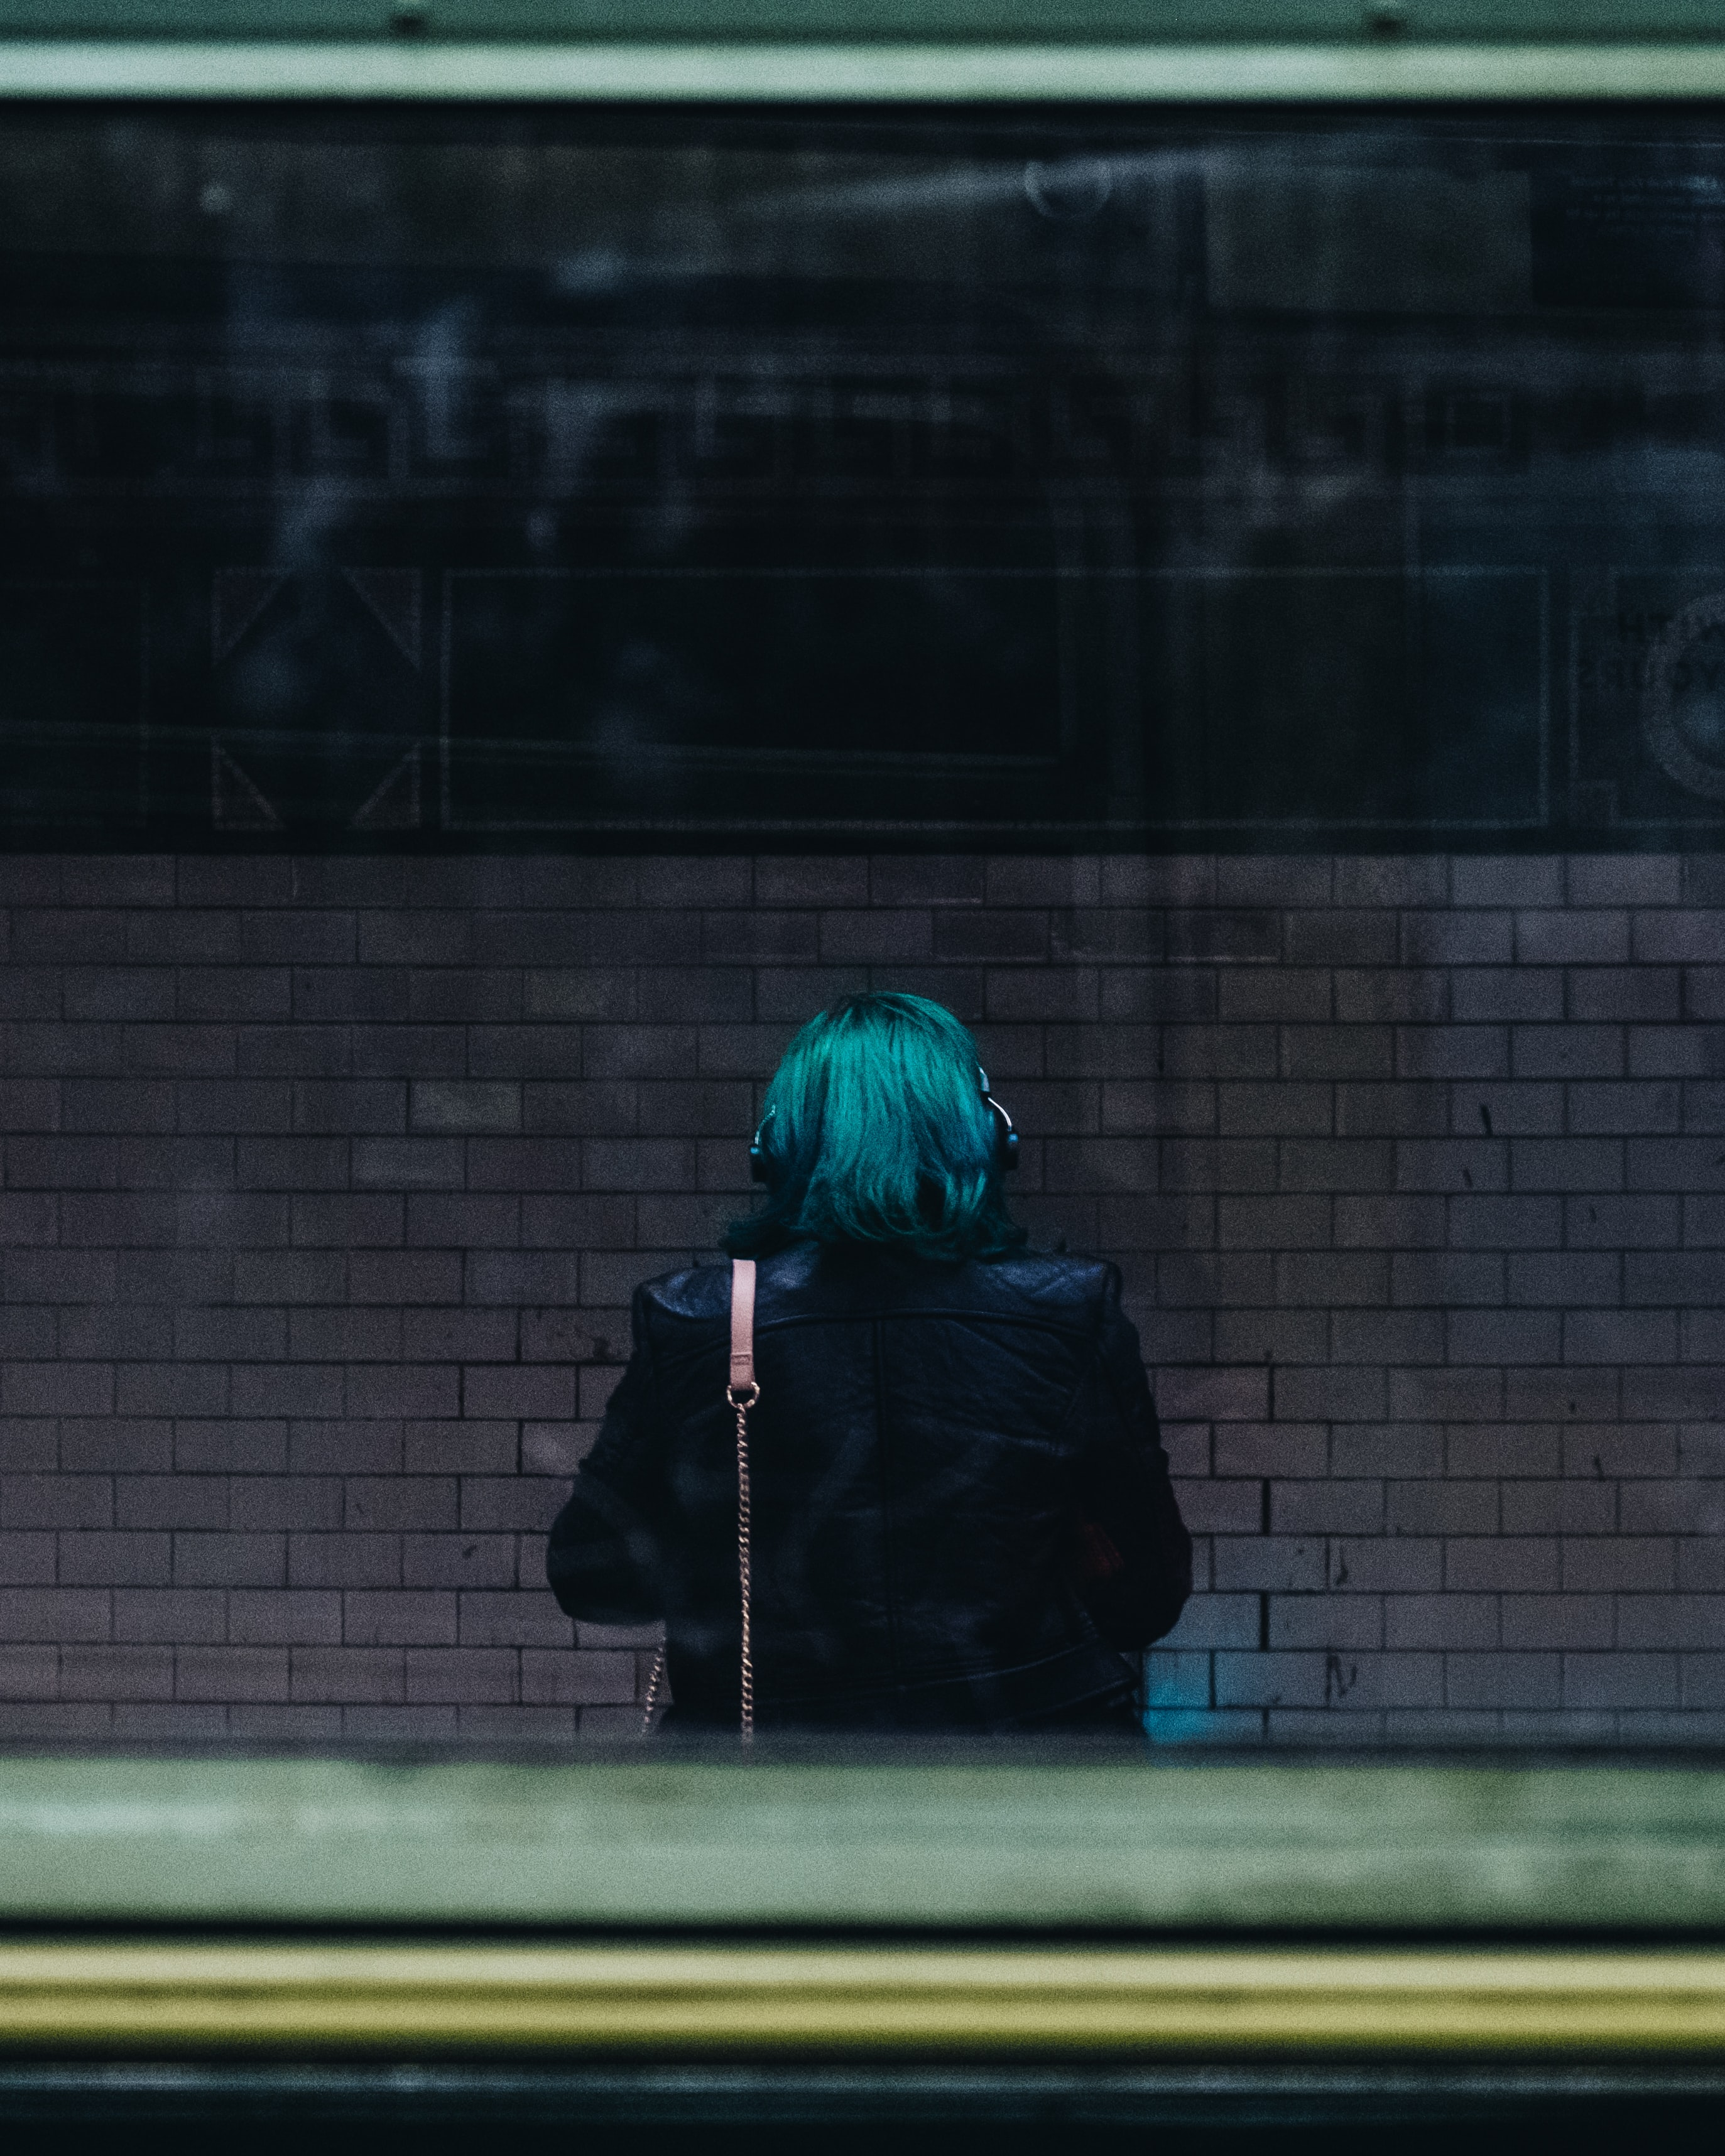 teal hair colored person standing behind glass panel